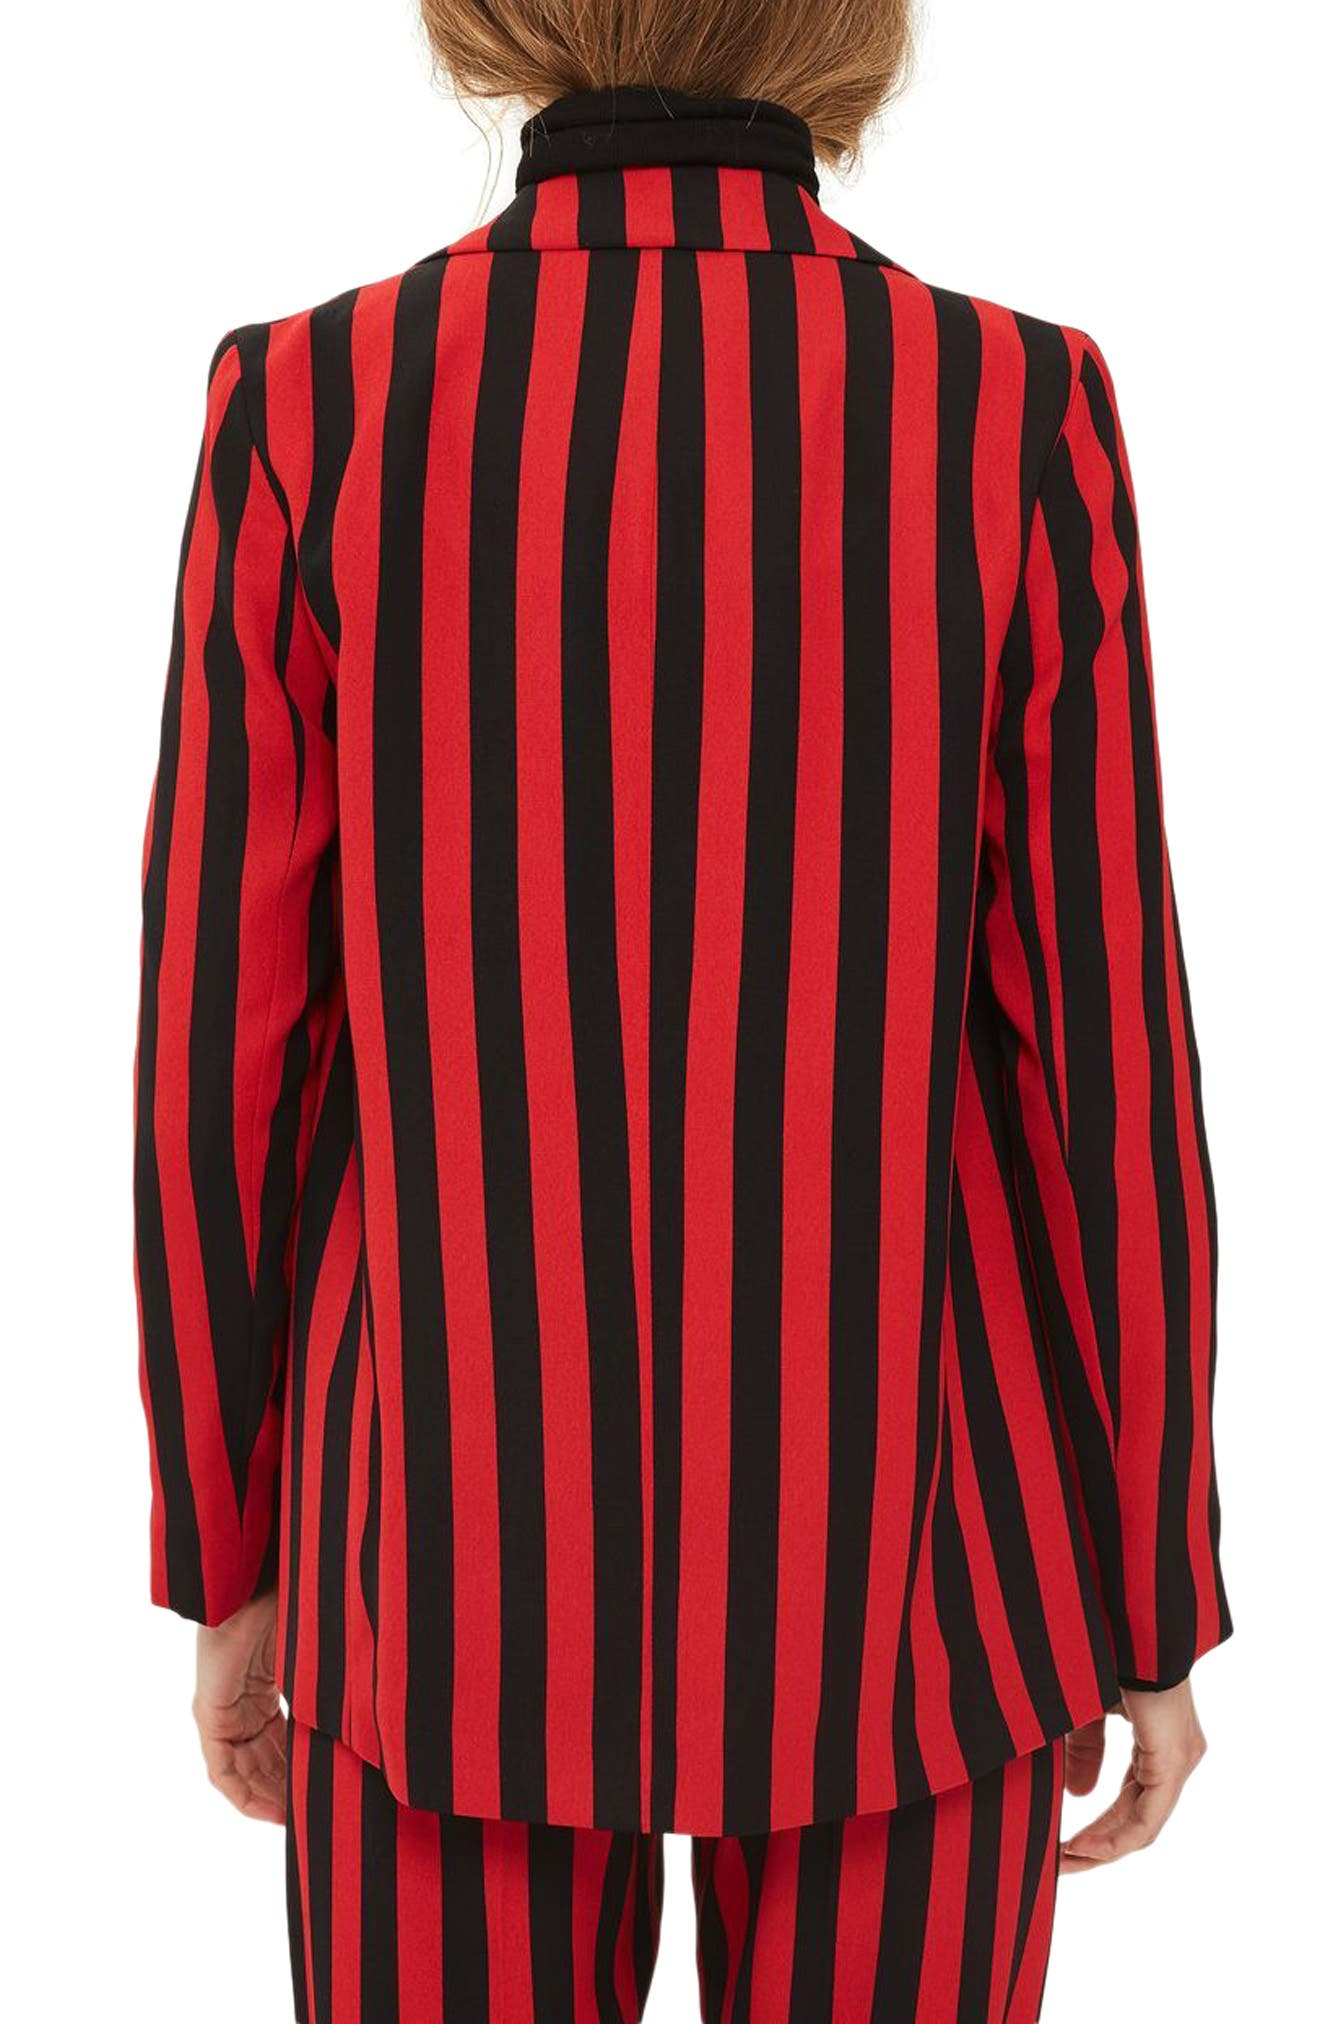 Humbug Stripe Double Breasted Blazer,                             Alternate thumbnail 2, color,                             601